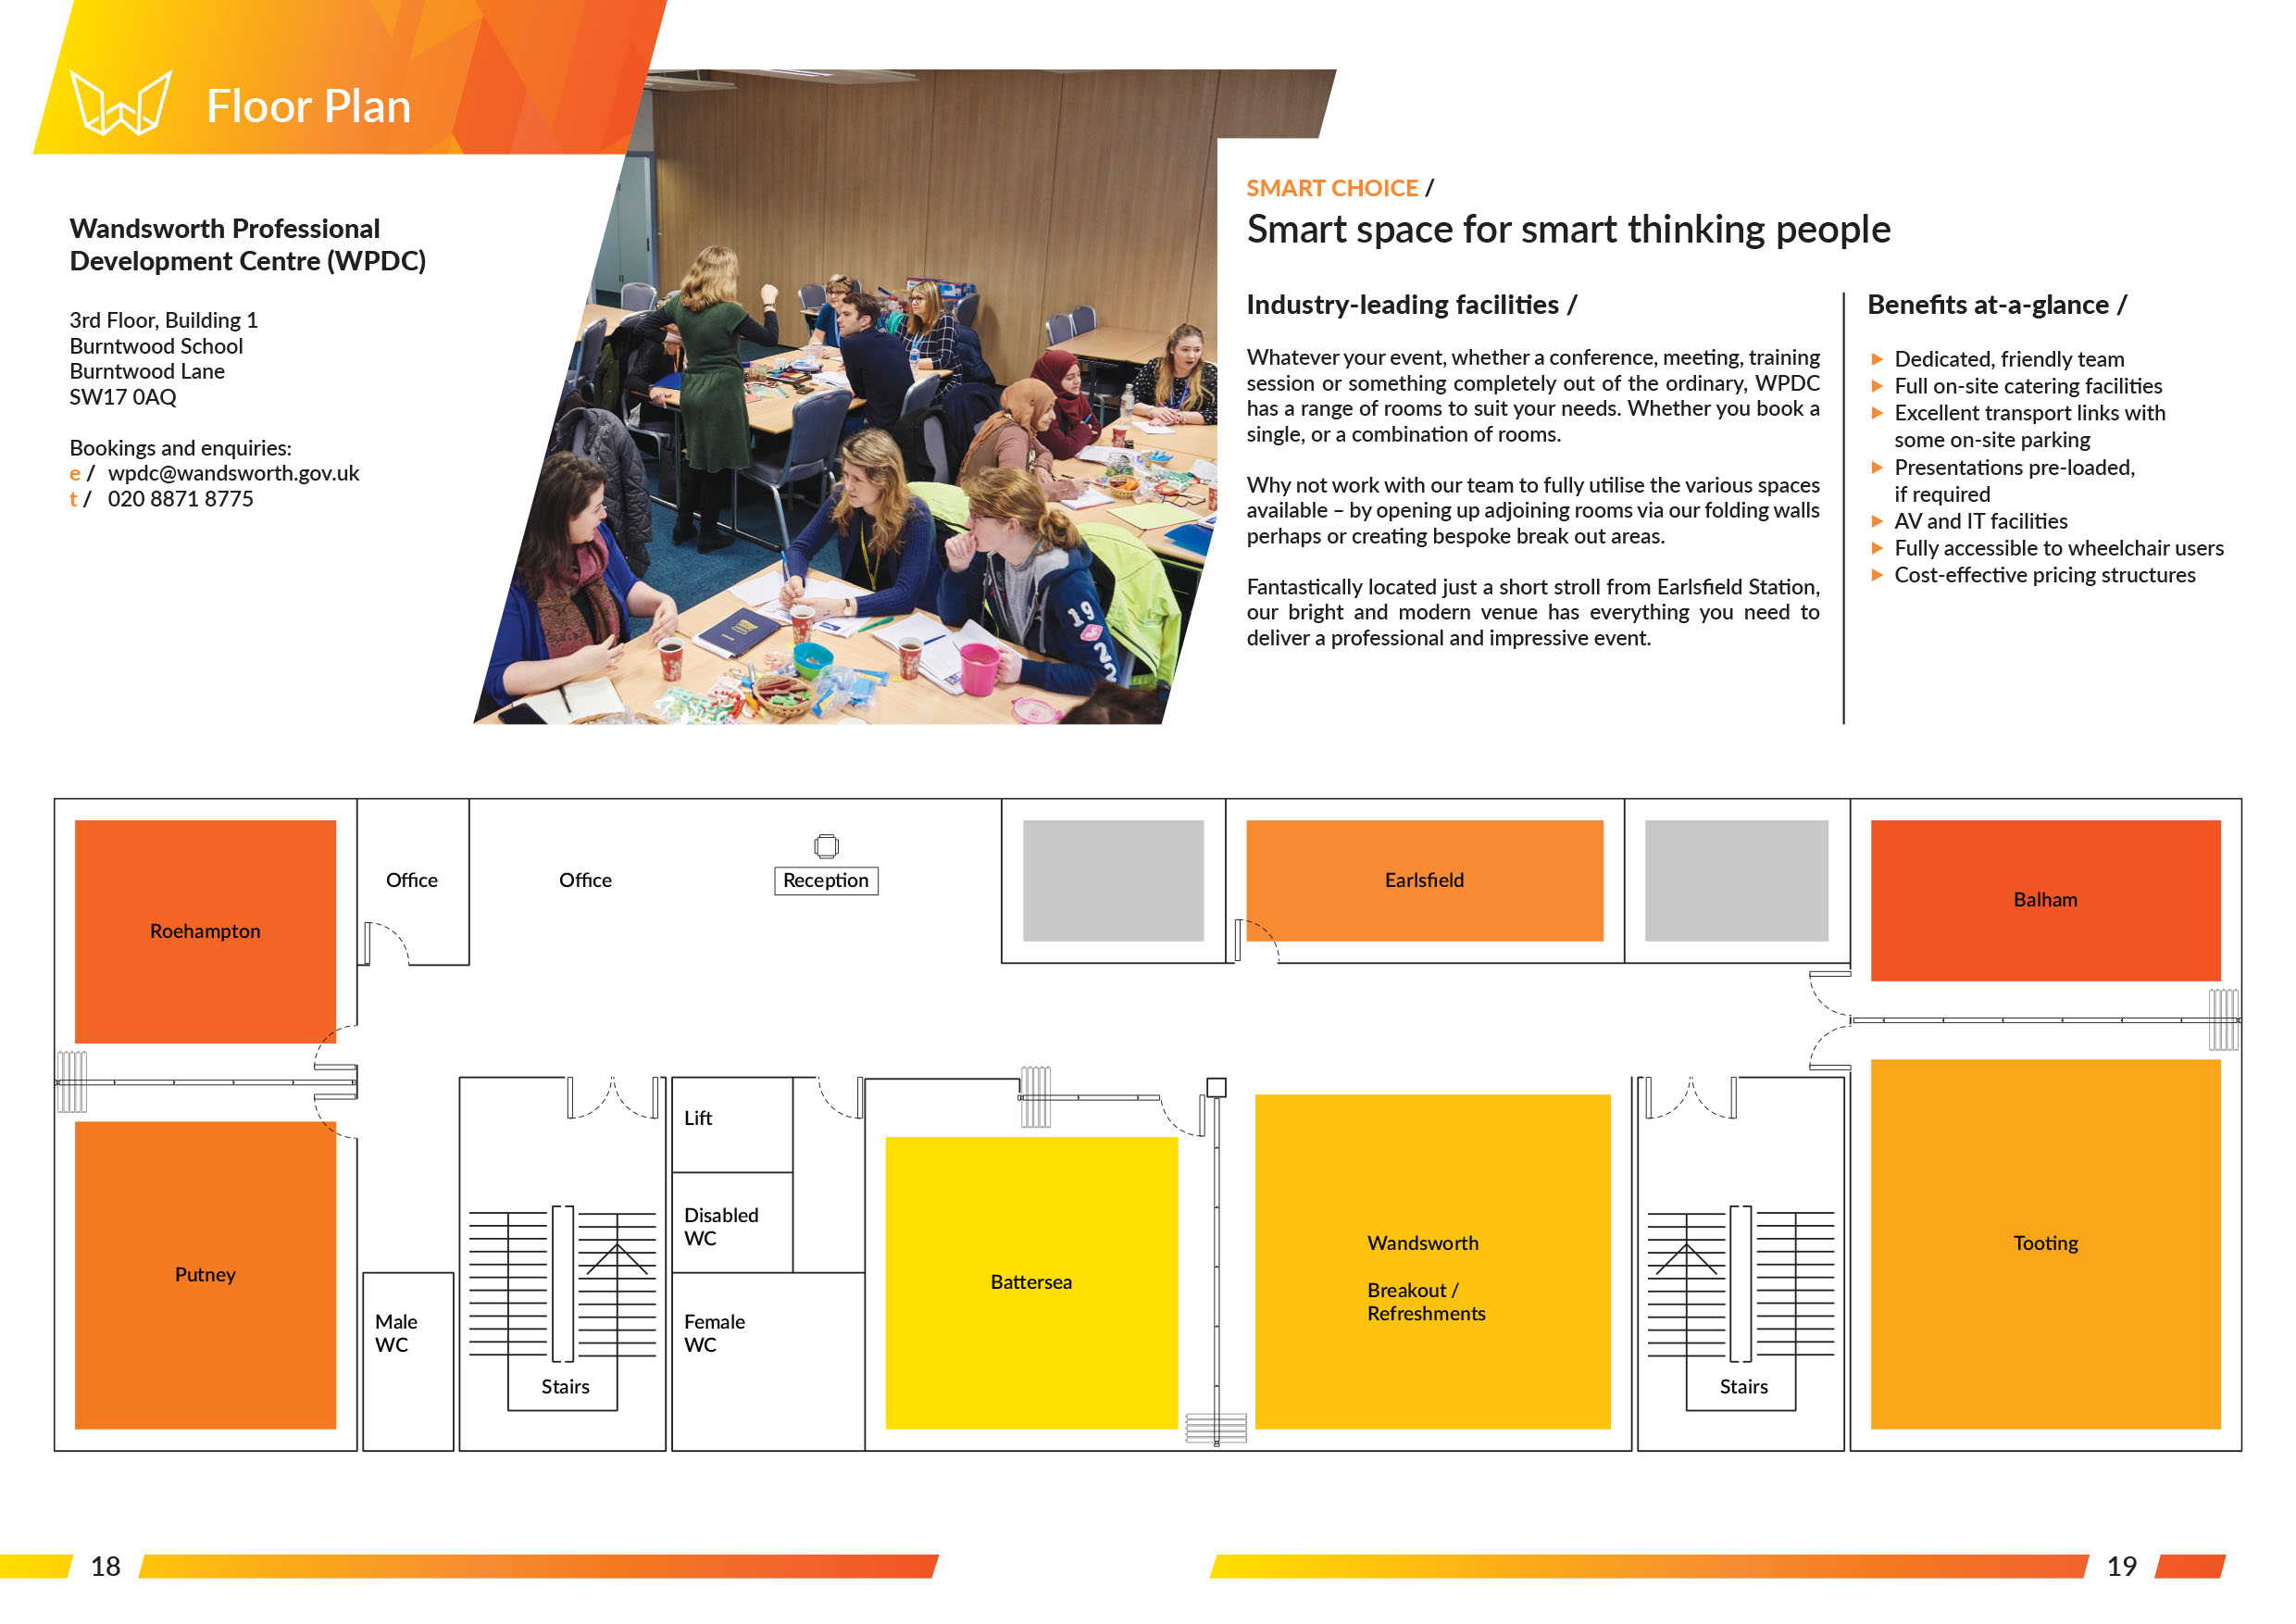 Wandsworth Professional Development Centre, Floor Plan, Designed by West Creative